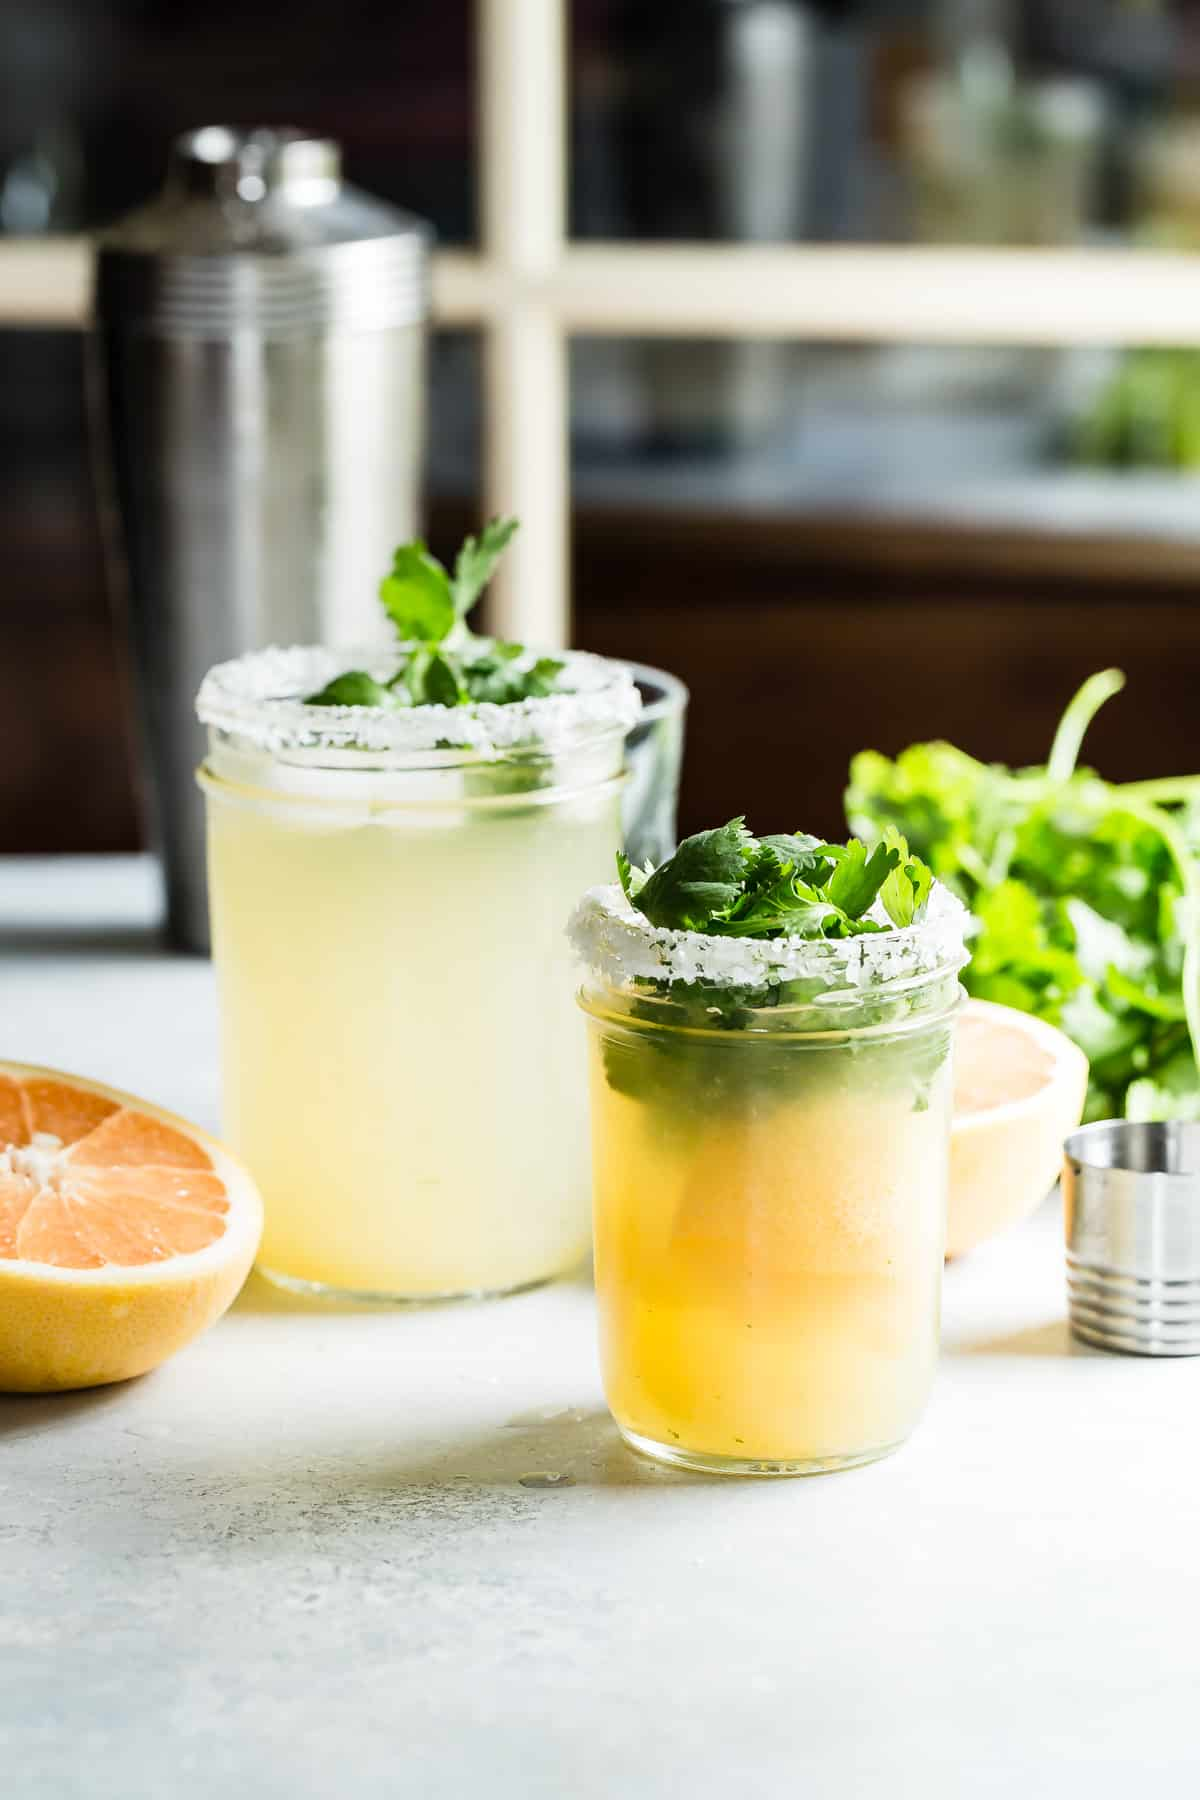 A perfect grapefruit margarita with cilantro ready for summer